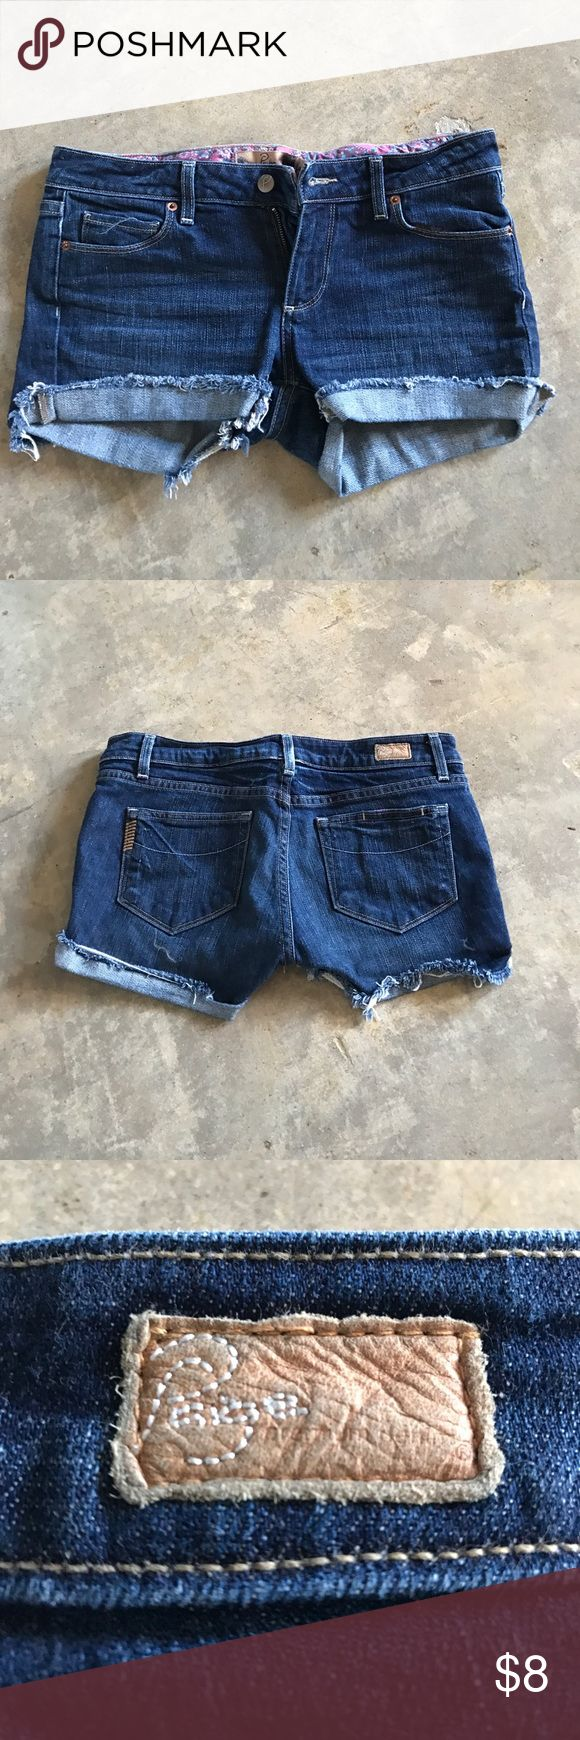 Paige Cutoff Jean Shorts Paige cutoff Jean shorts. Size 28 really soft material Paige Jeans Shorts